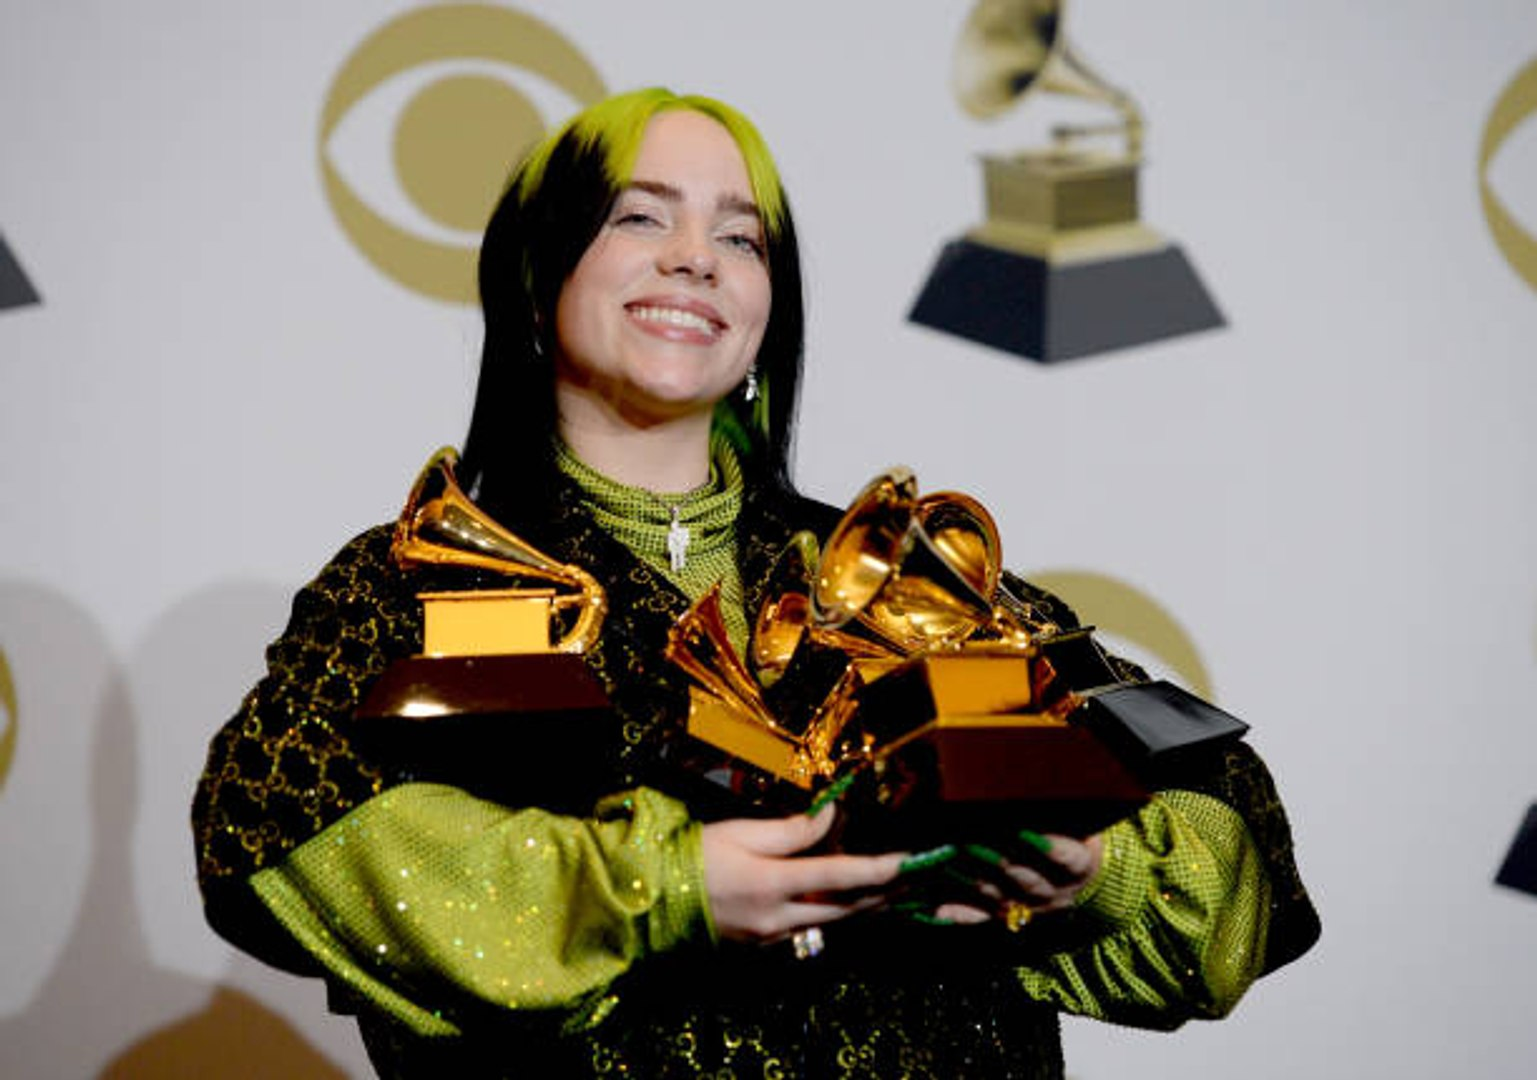 Billie Eilish to Perform at 2020 Oscars Following Grammys Sweep